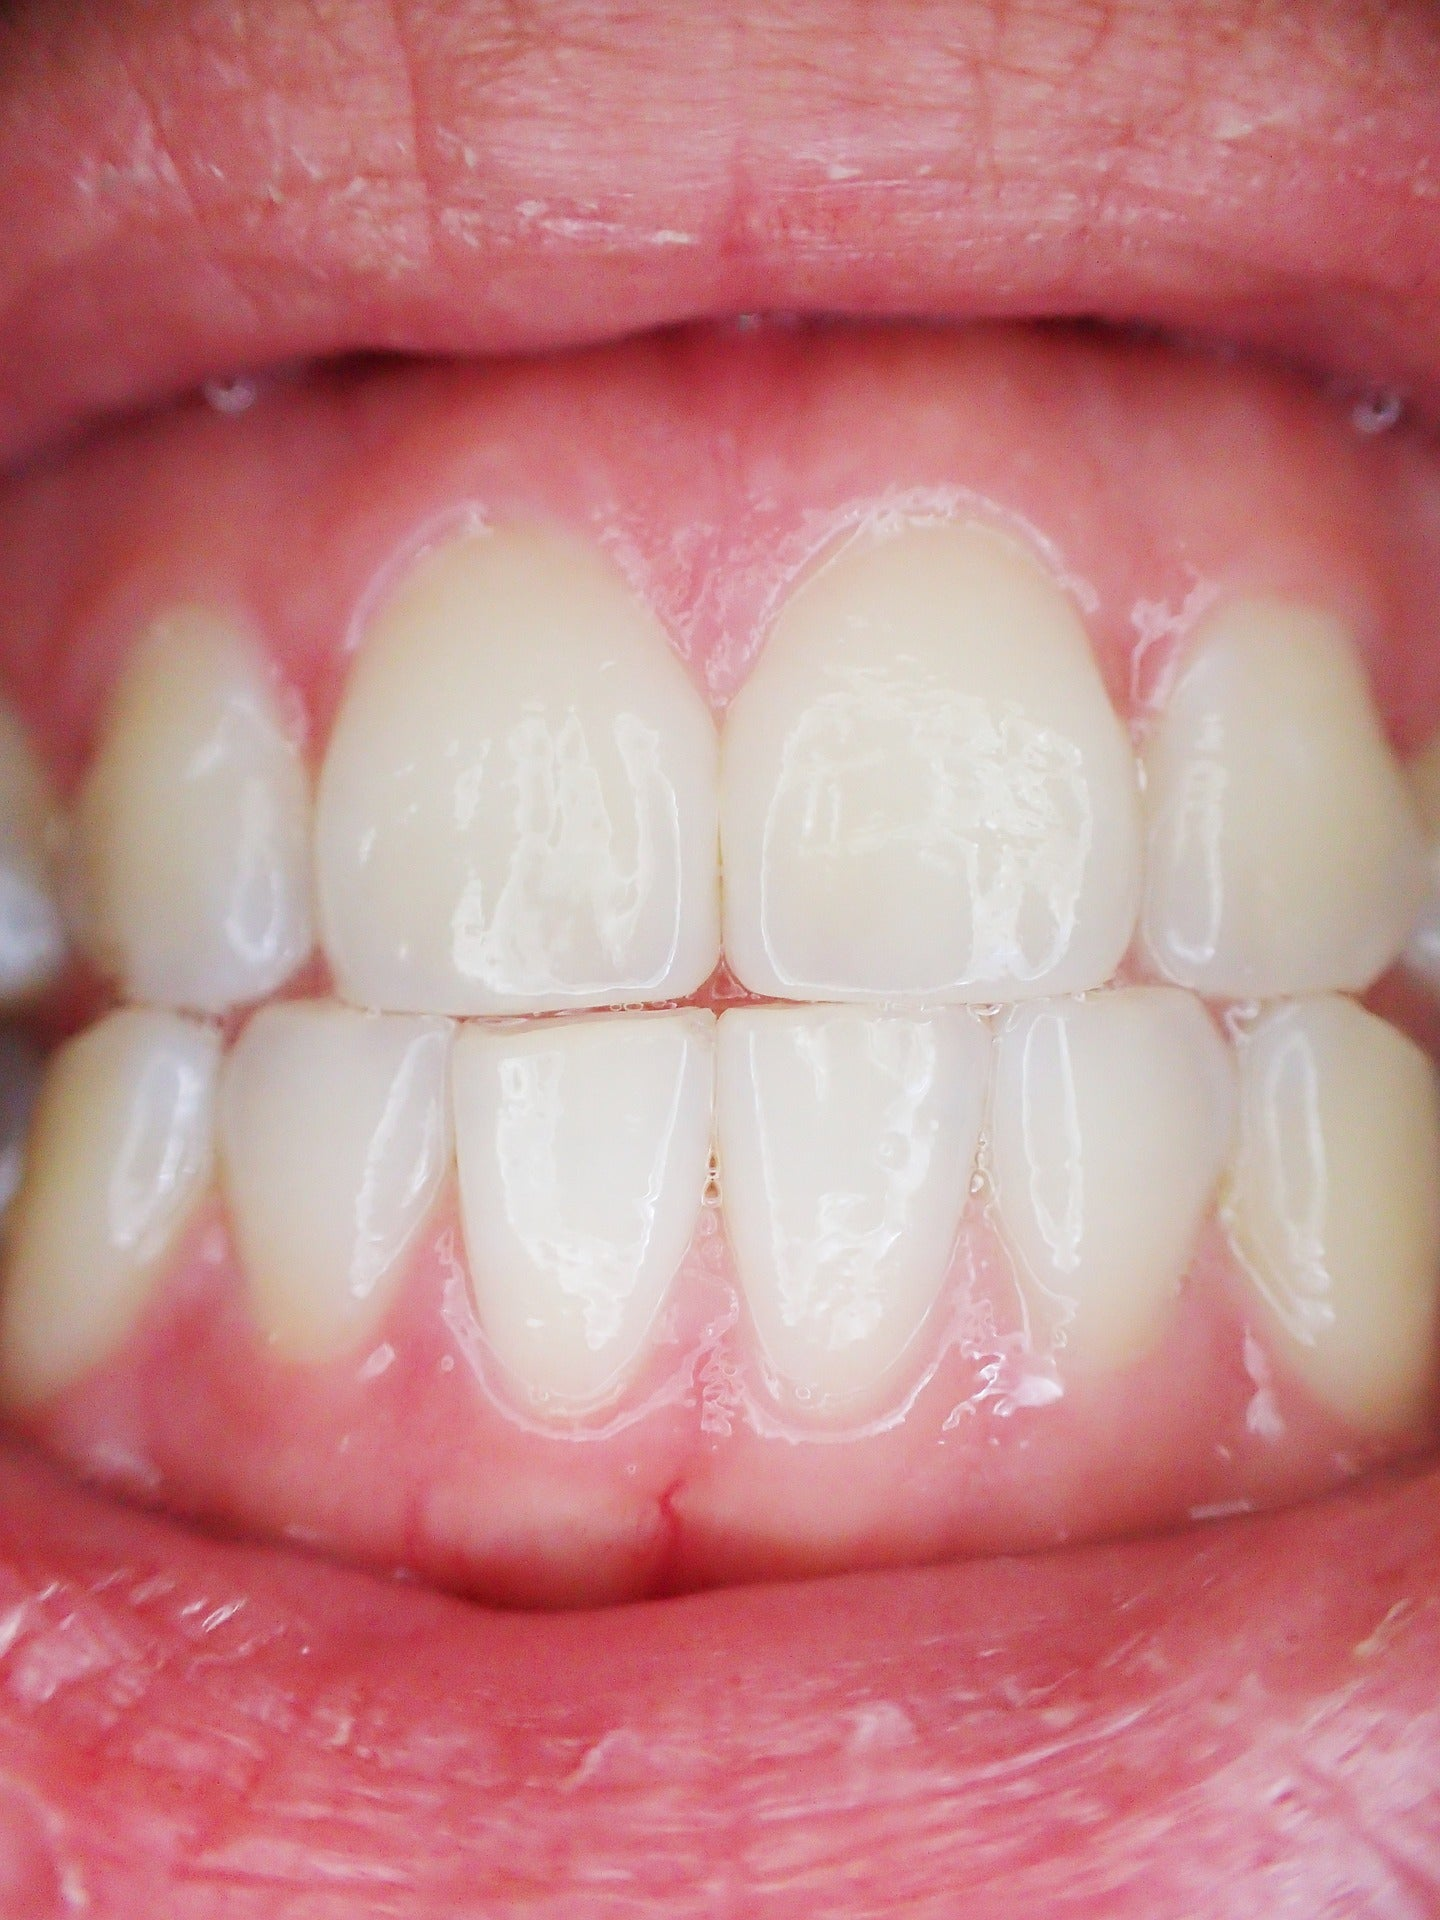 Close up of someone's teeth and gums, for AutoBrush